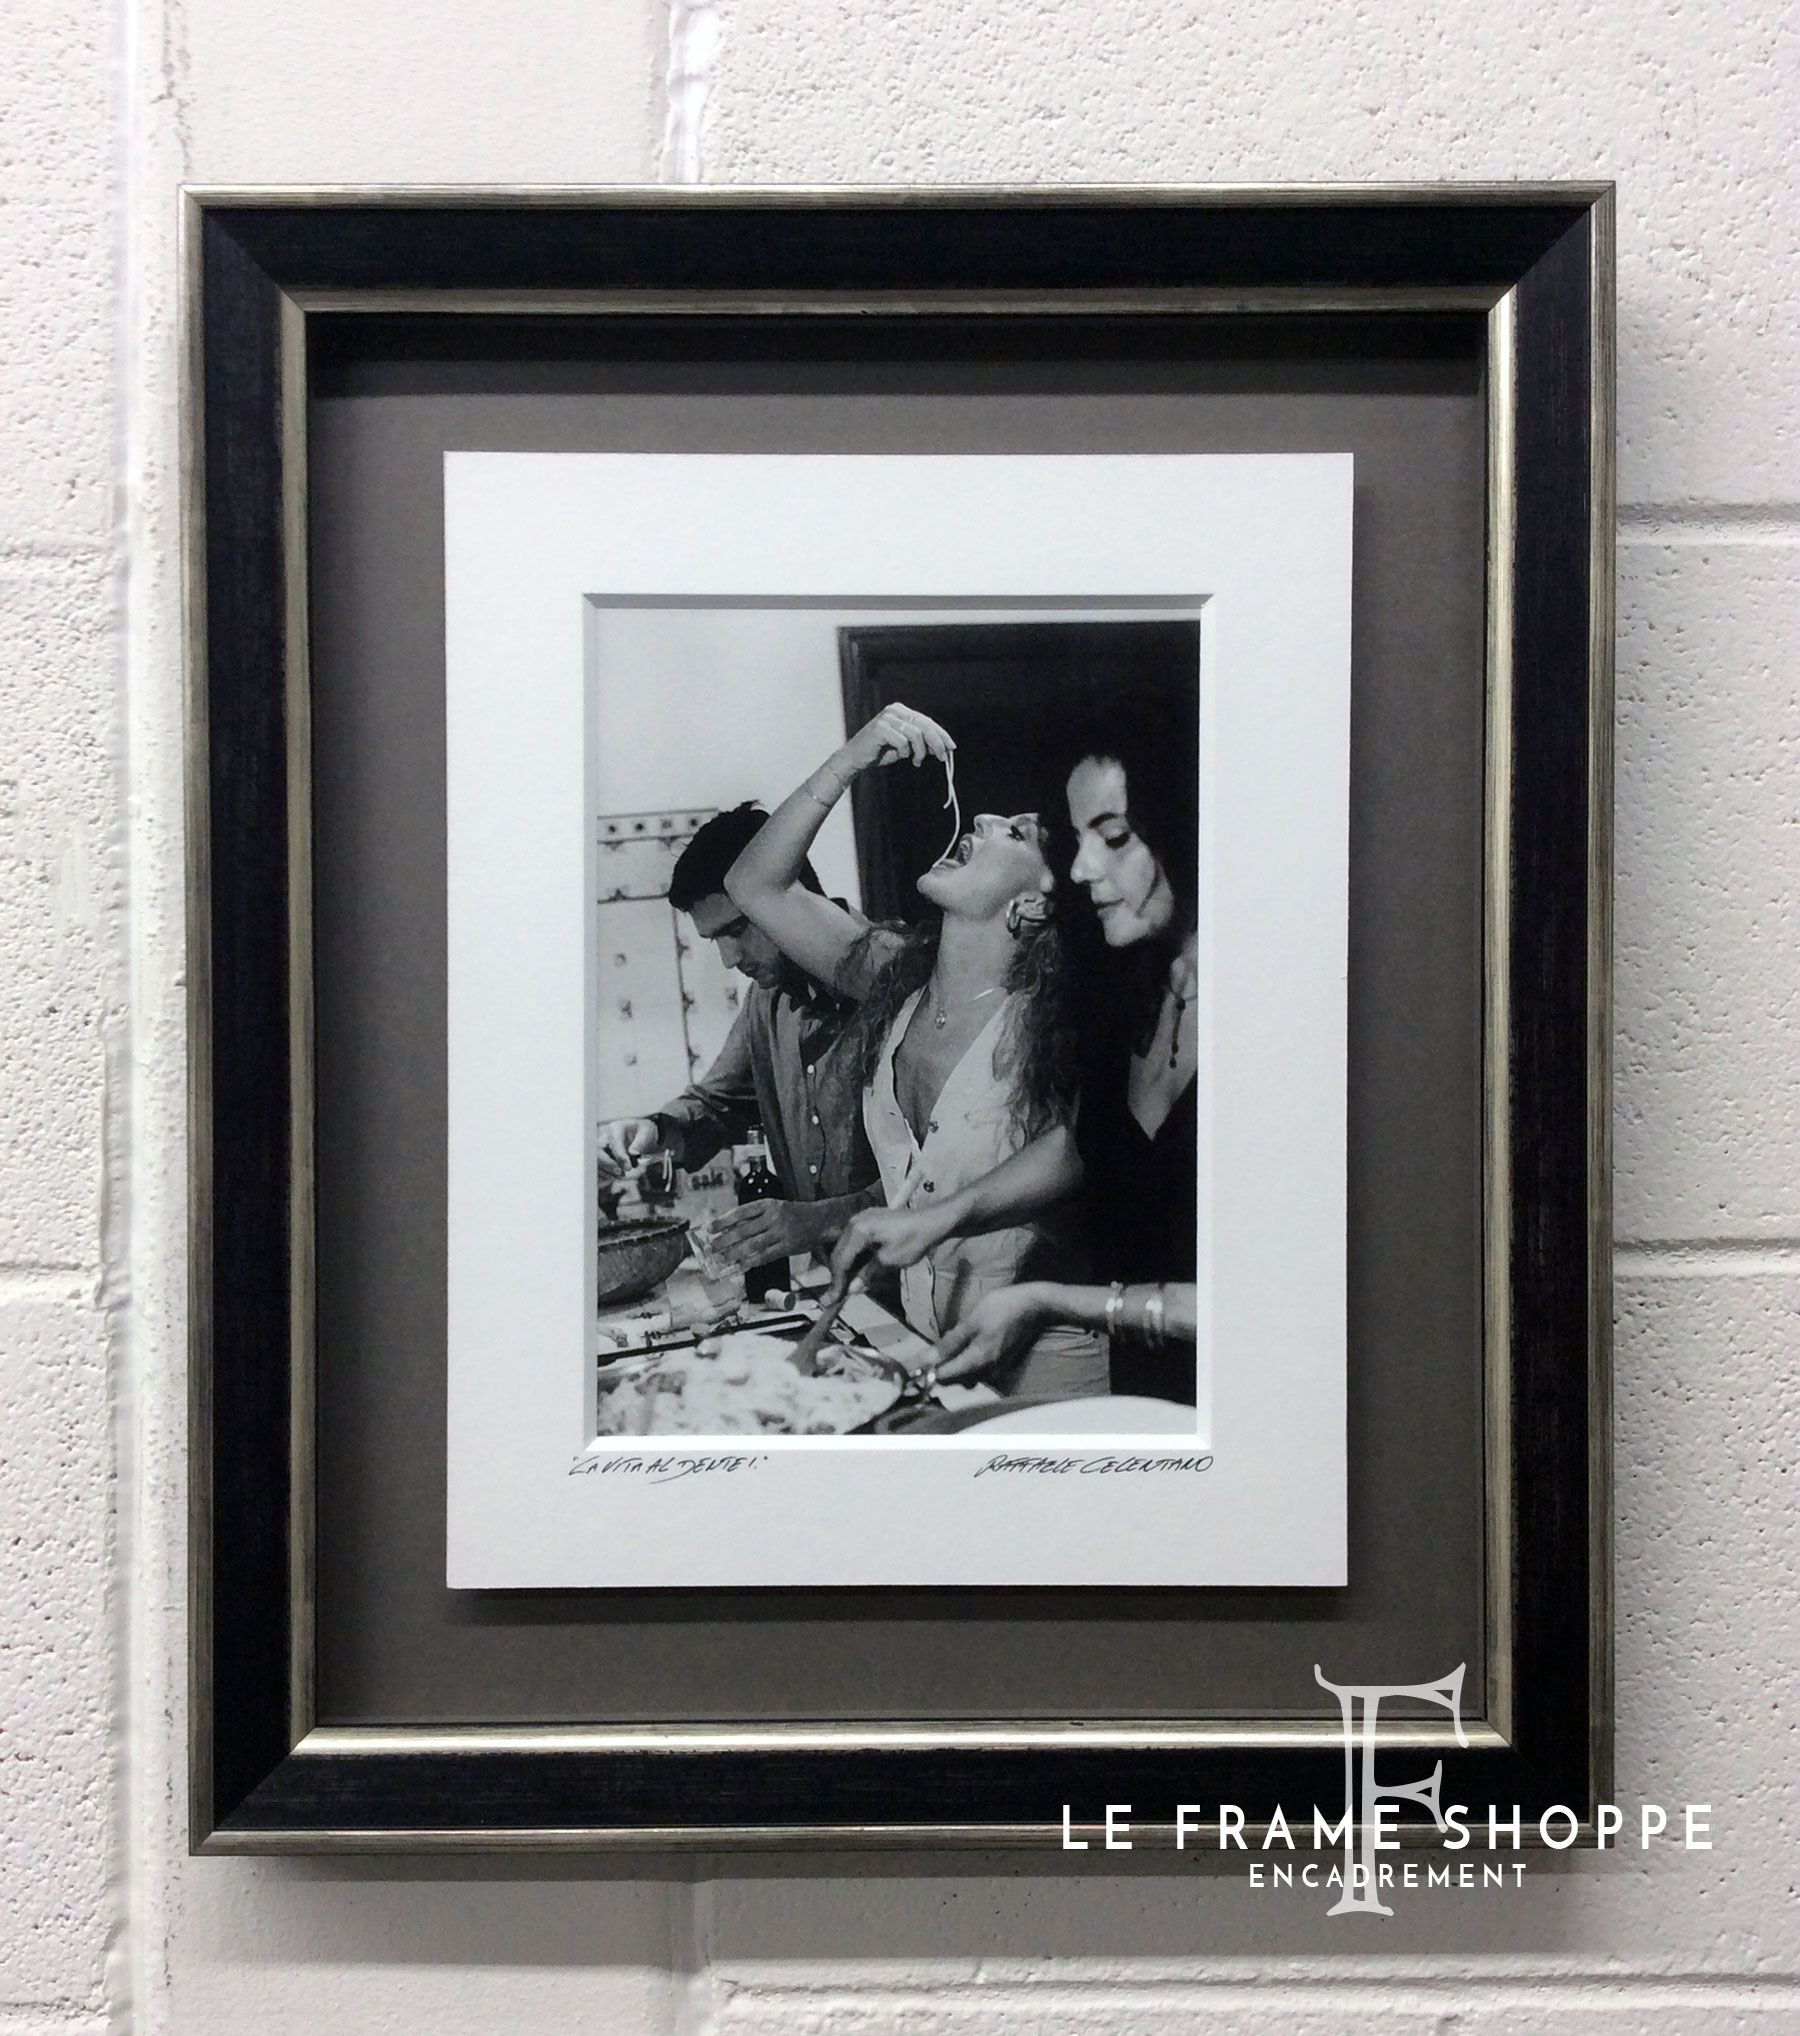 We'll have what she's having! This great photo our client brought back from Italy has a signed and titled mat that is just a little too small to give it an appropriate presentation on the wall. So we float mounted it on a charcoal grey mat and recessed it in (what else) a contemporary #Roma frame. #customframing #Italy #photo #leframeshoppe #lifeisbetterframed